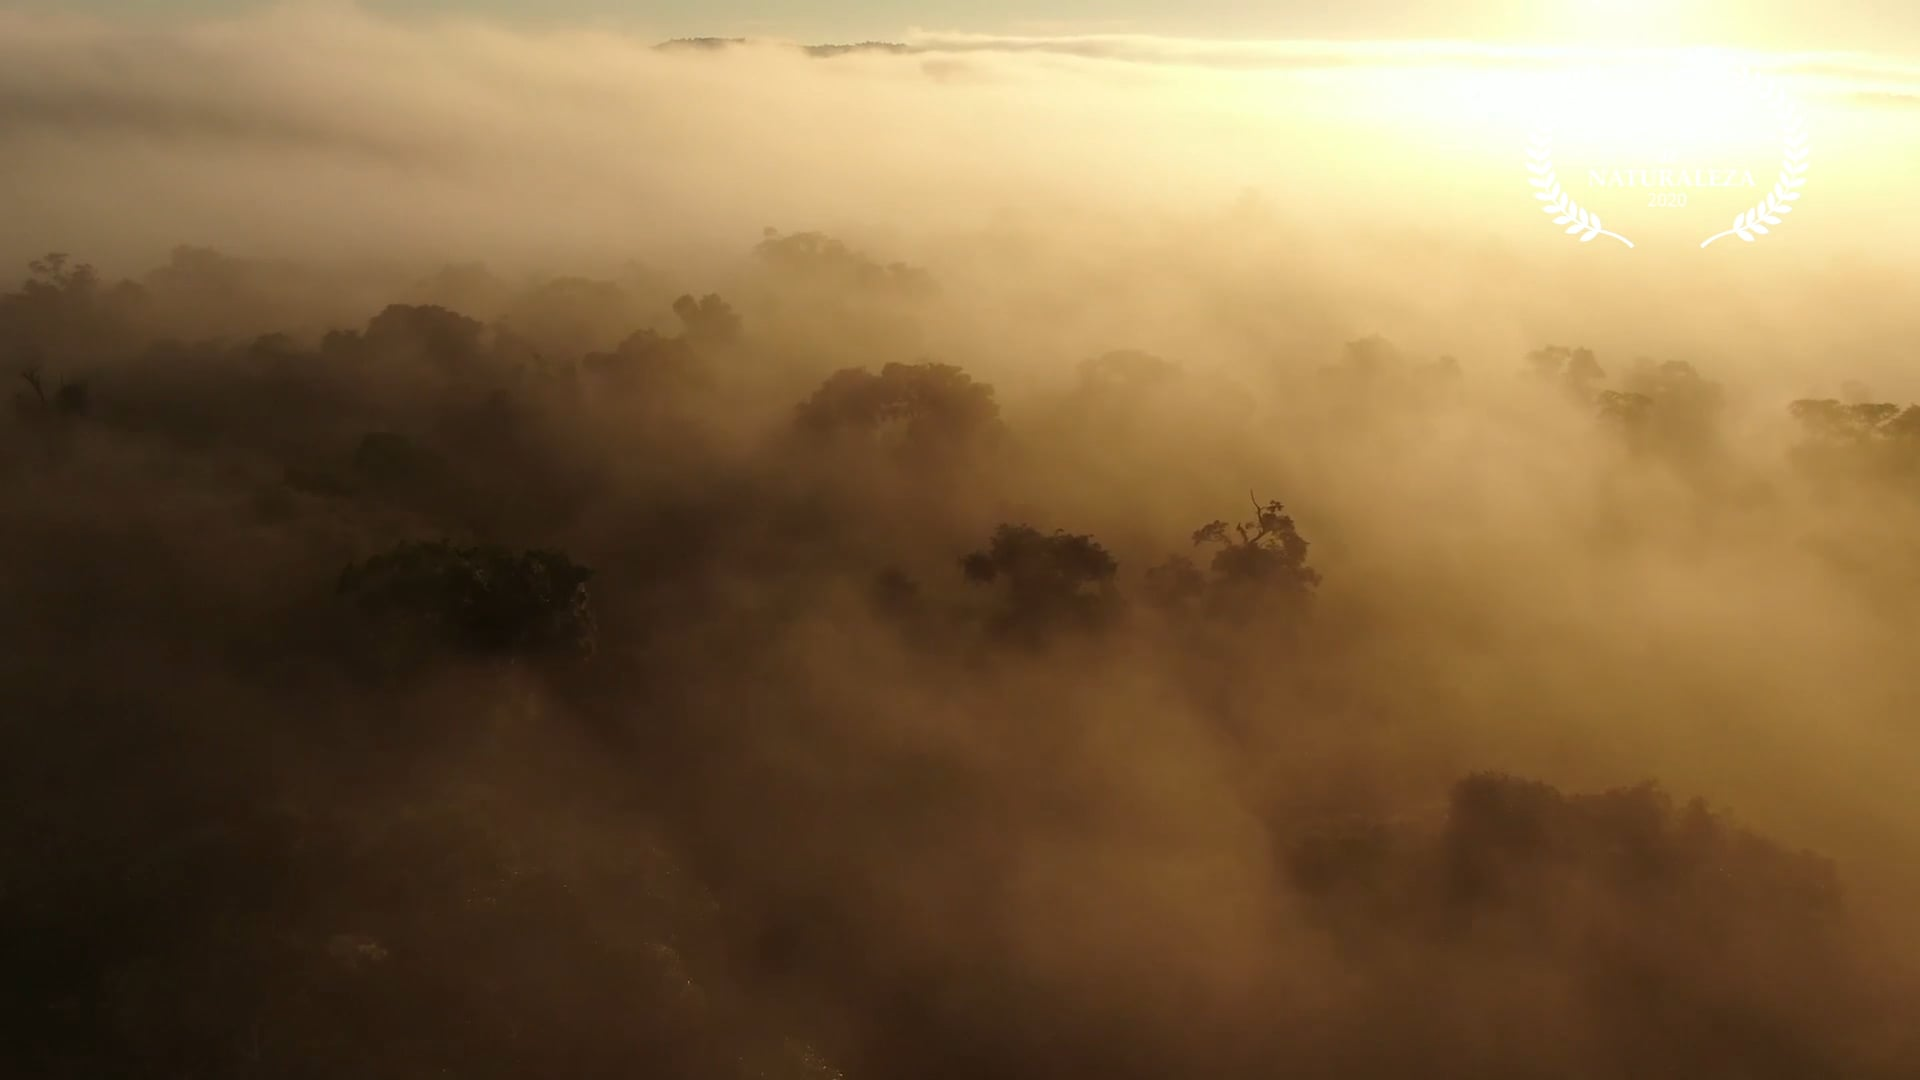 Forest of Misiones: The Wonder From the Air